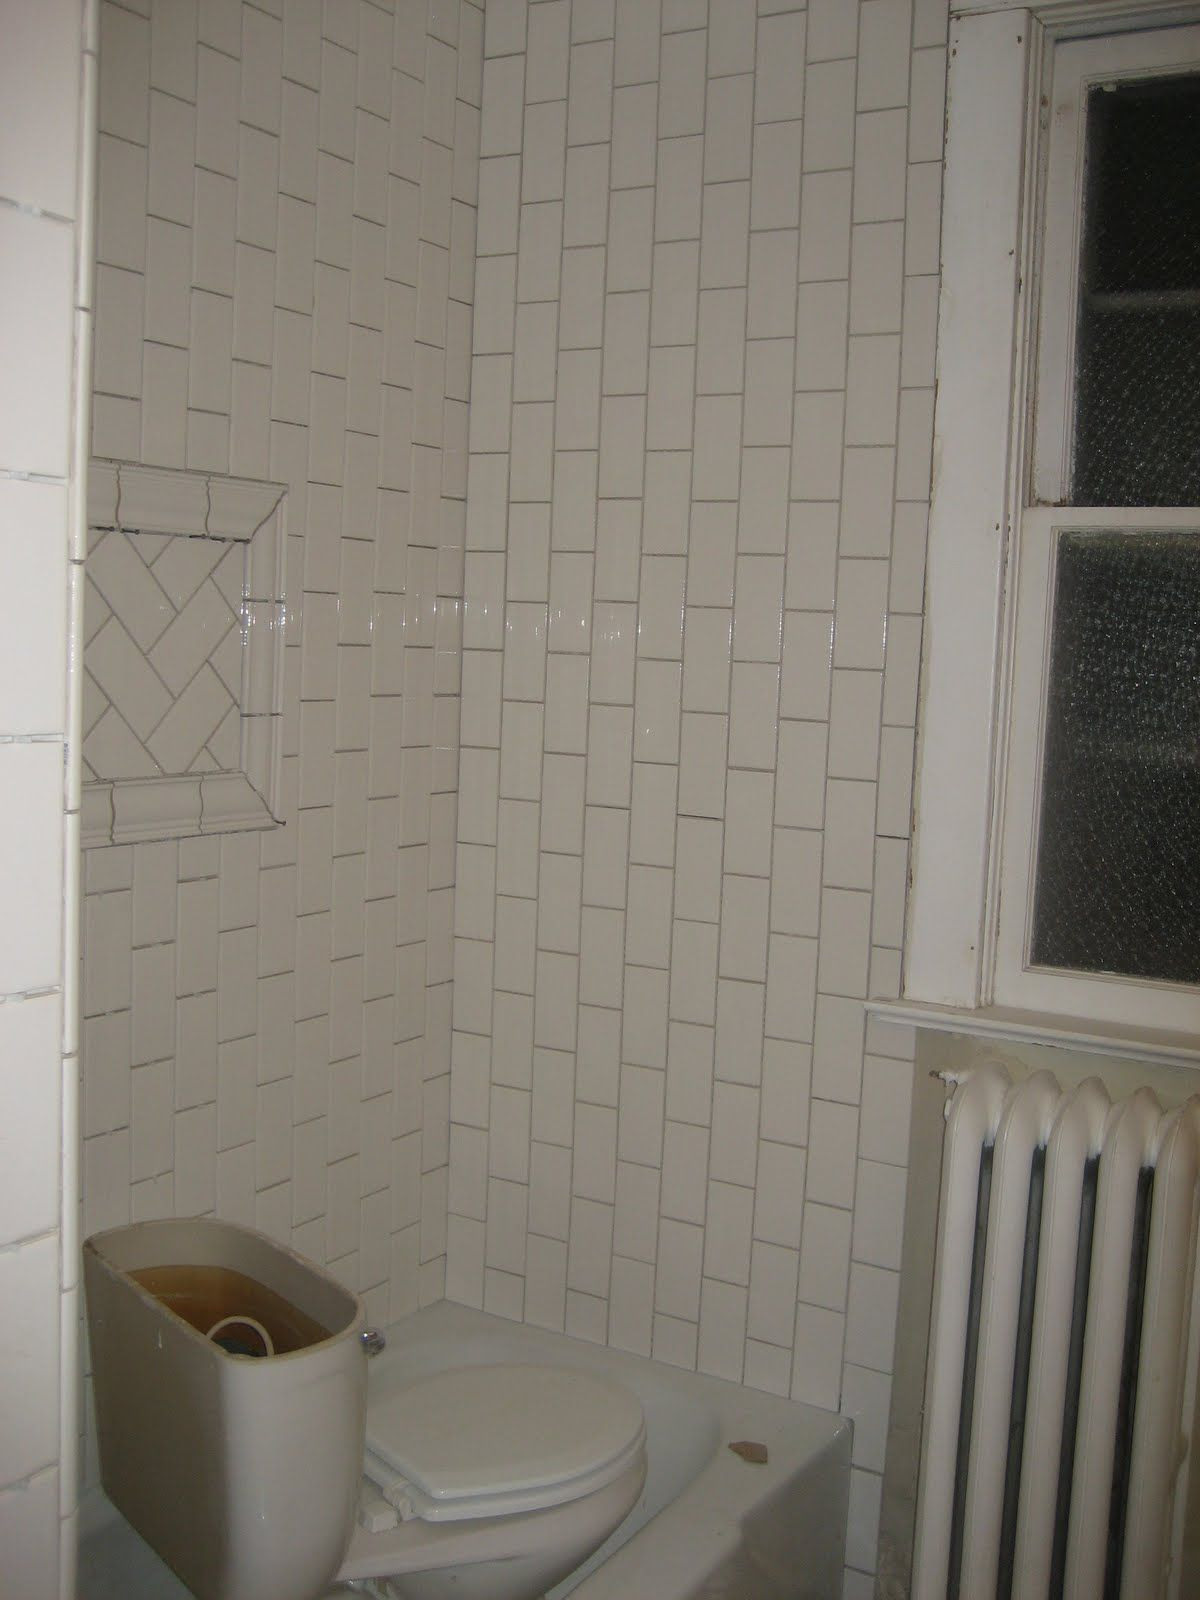 Best ideas about Vertical Subway Tile . Save or Pin Vertical subway tile and pattern like the herringbone Now.